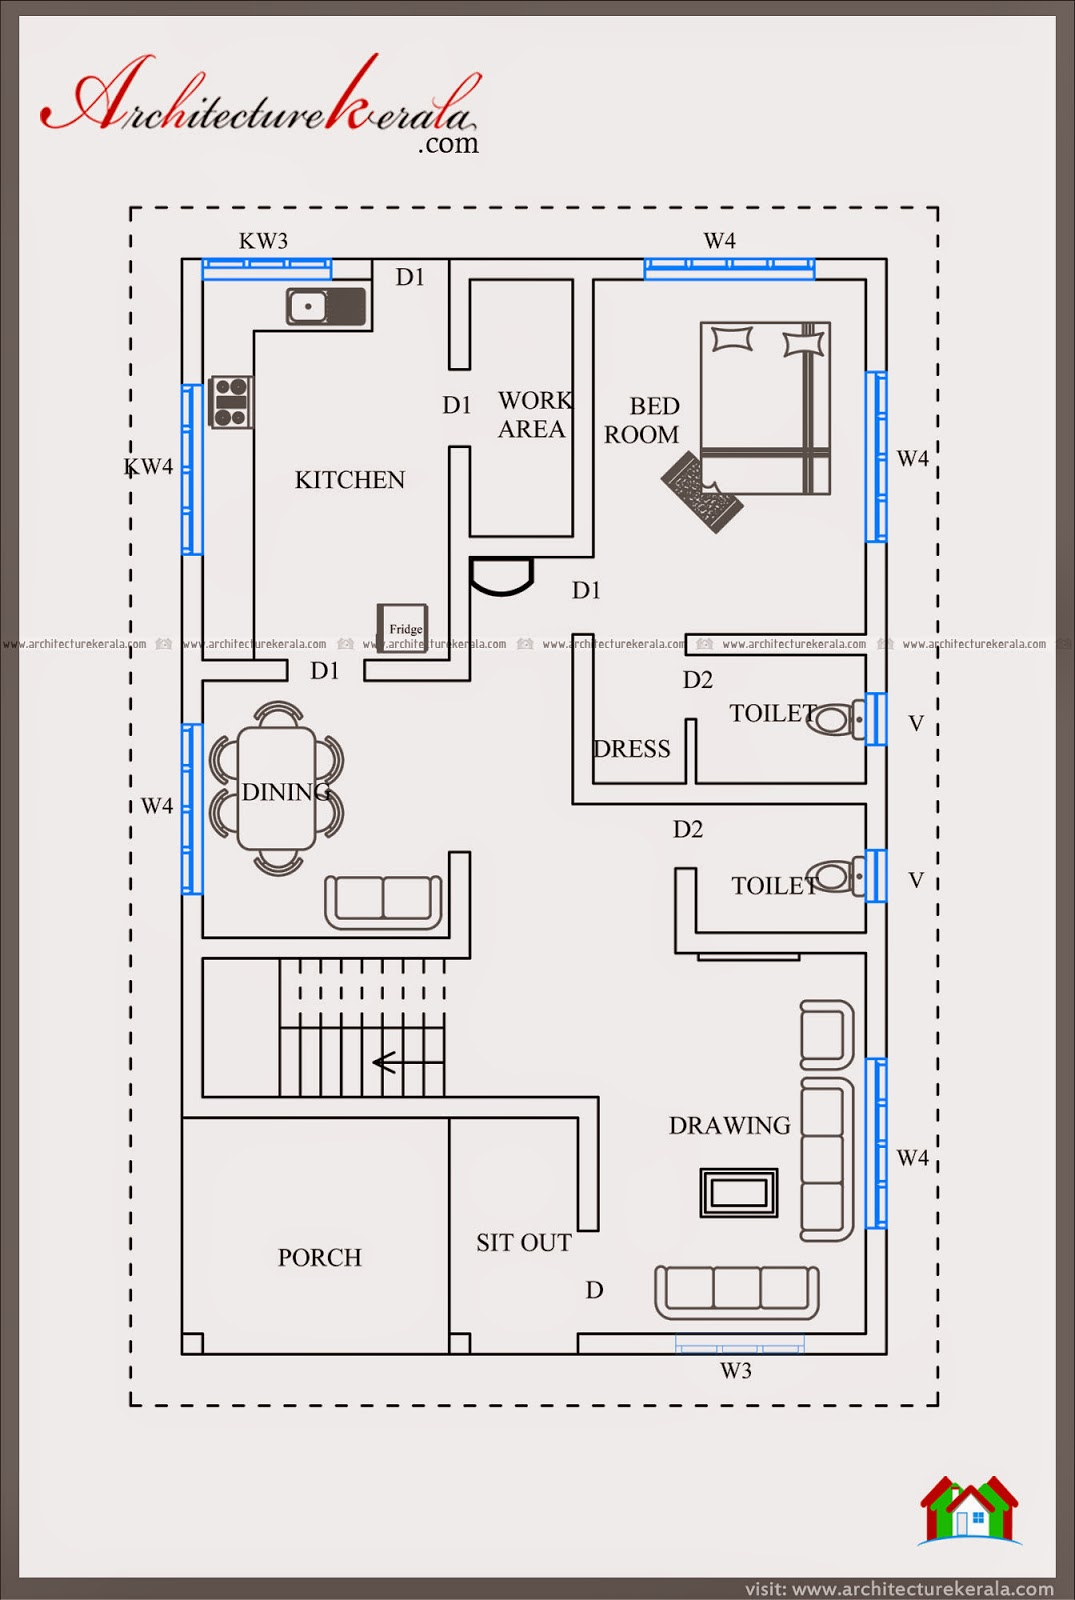 Elevation Rv Floor Plans : Sf house plan and elevation architecture kerala